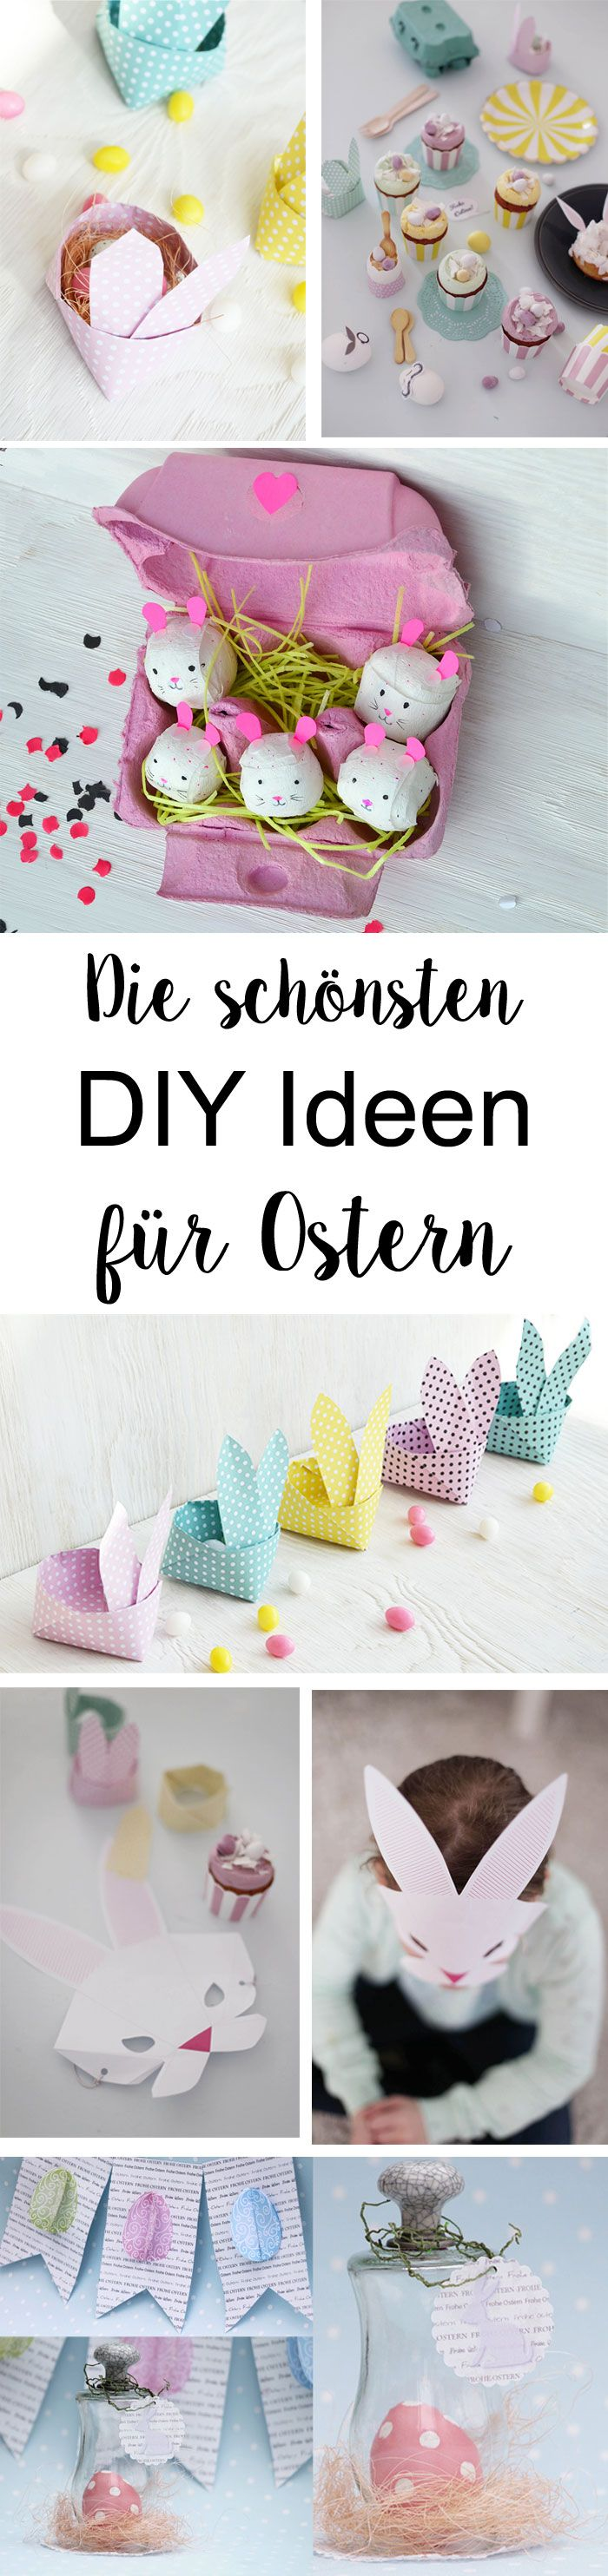 176 best images about ostern mit kindern basteln on - Dekoration ostern ...